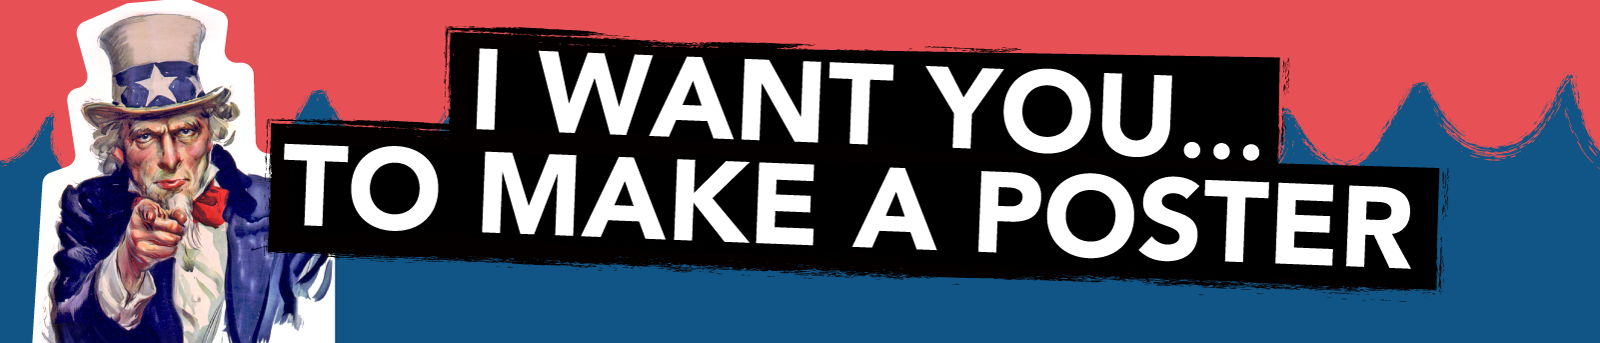 I Want You...To Make a Poster